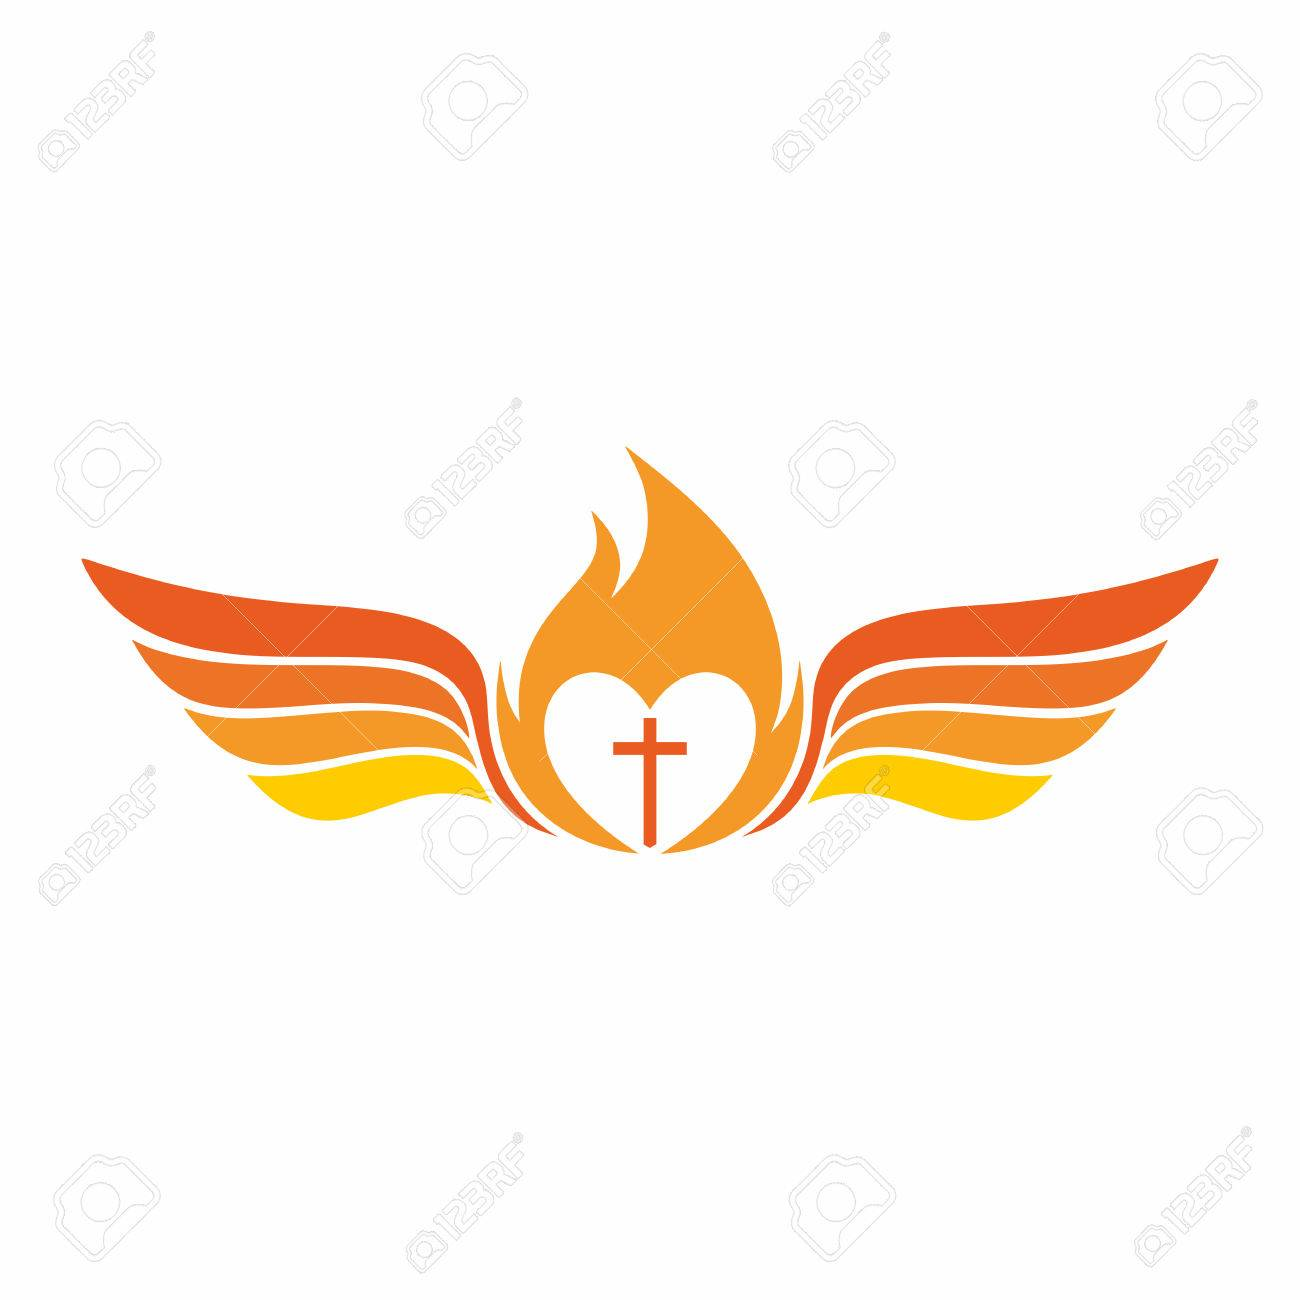 church the cross of jesus christ the flame of the holy spirit